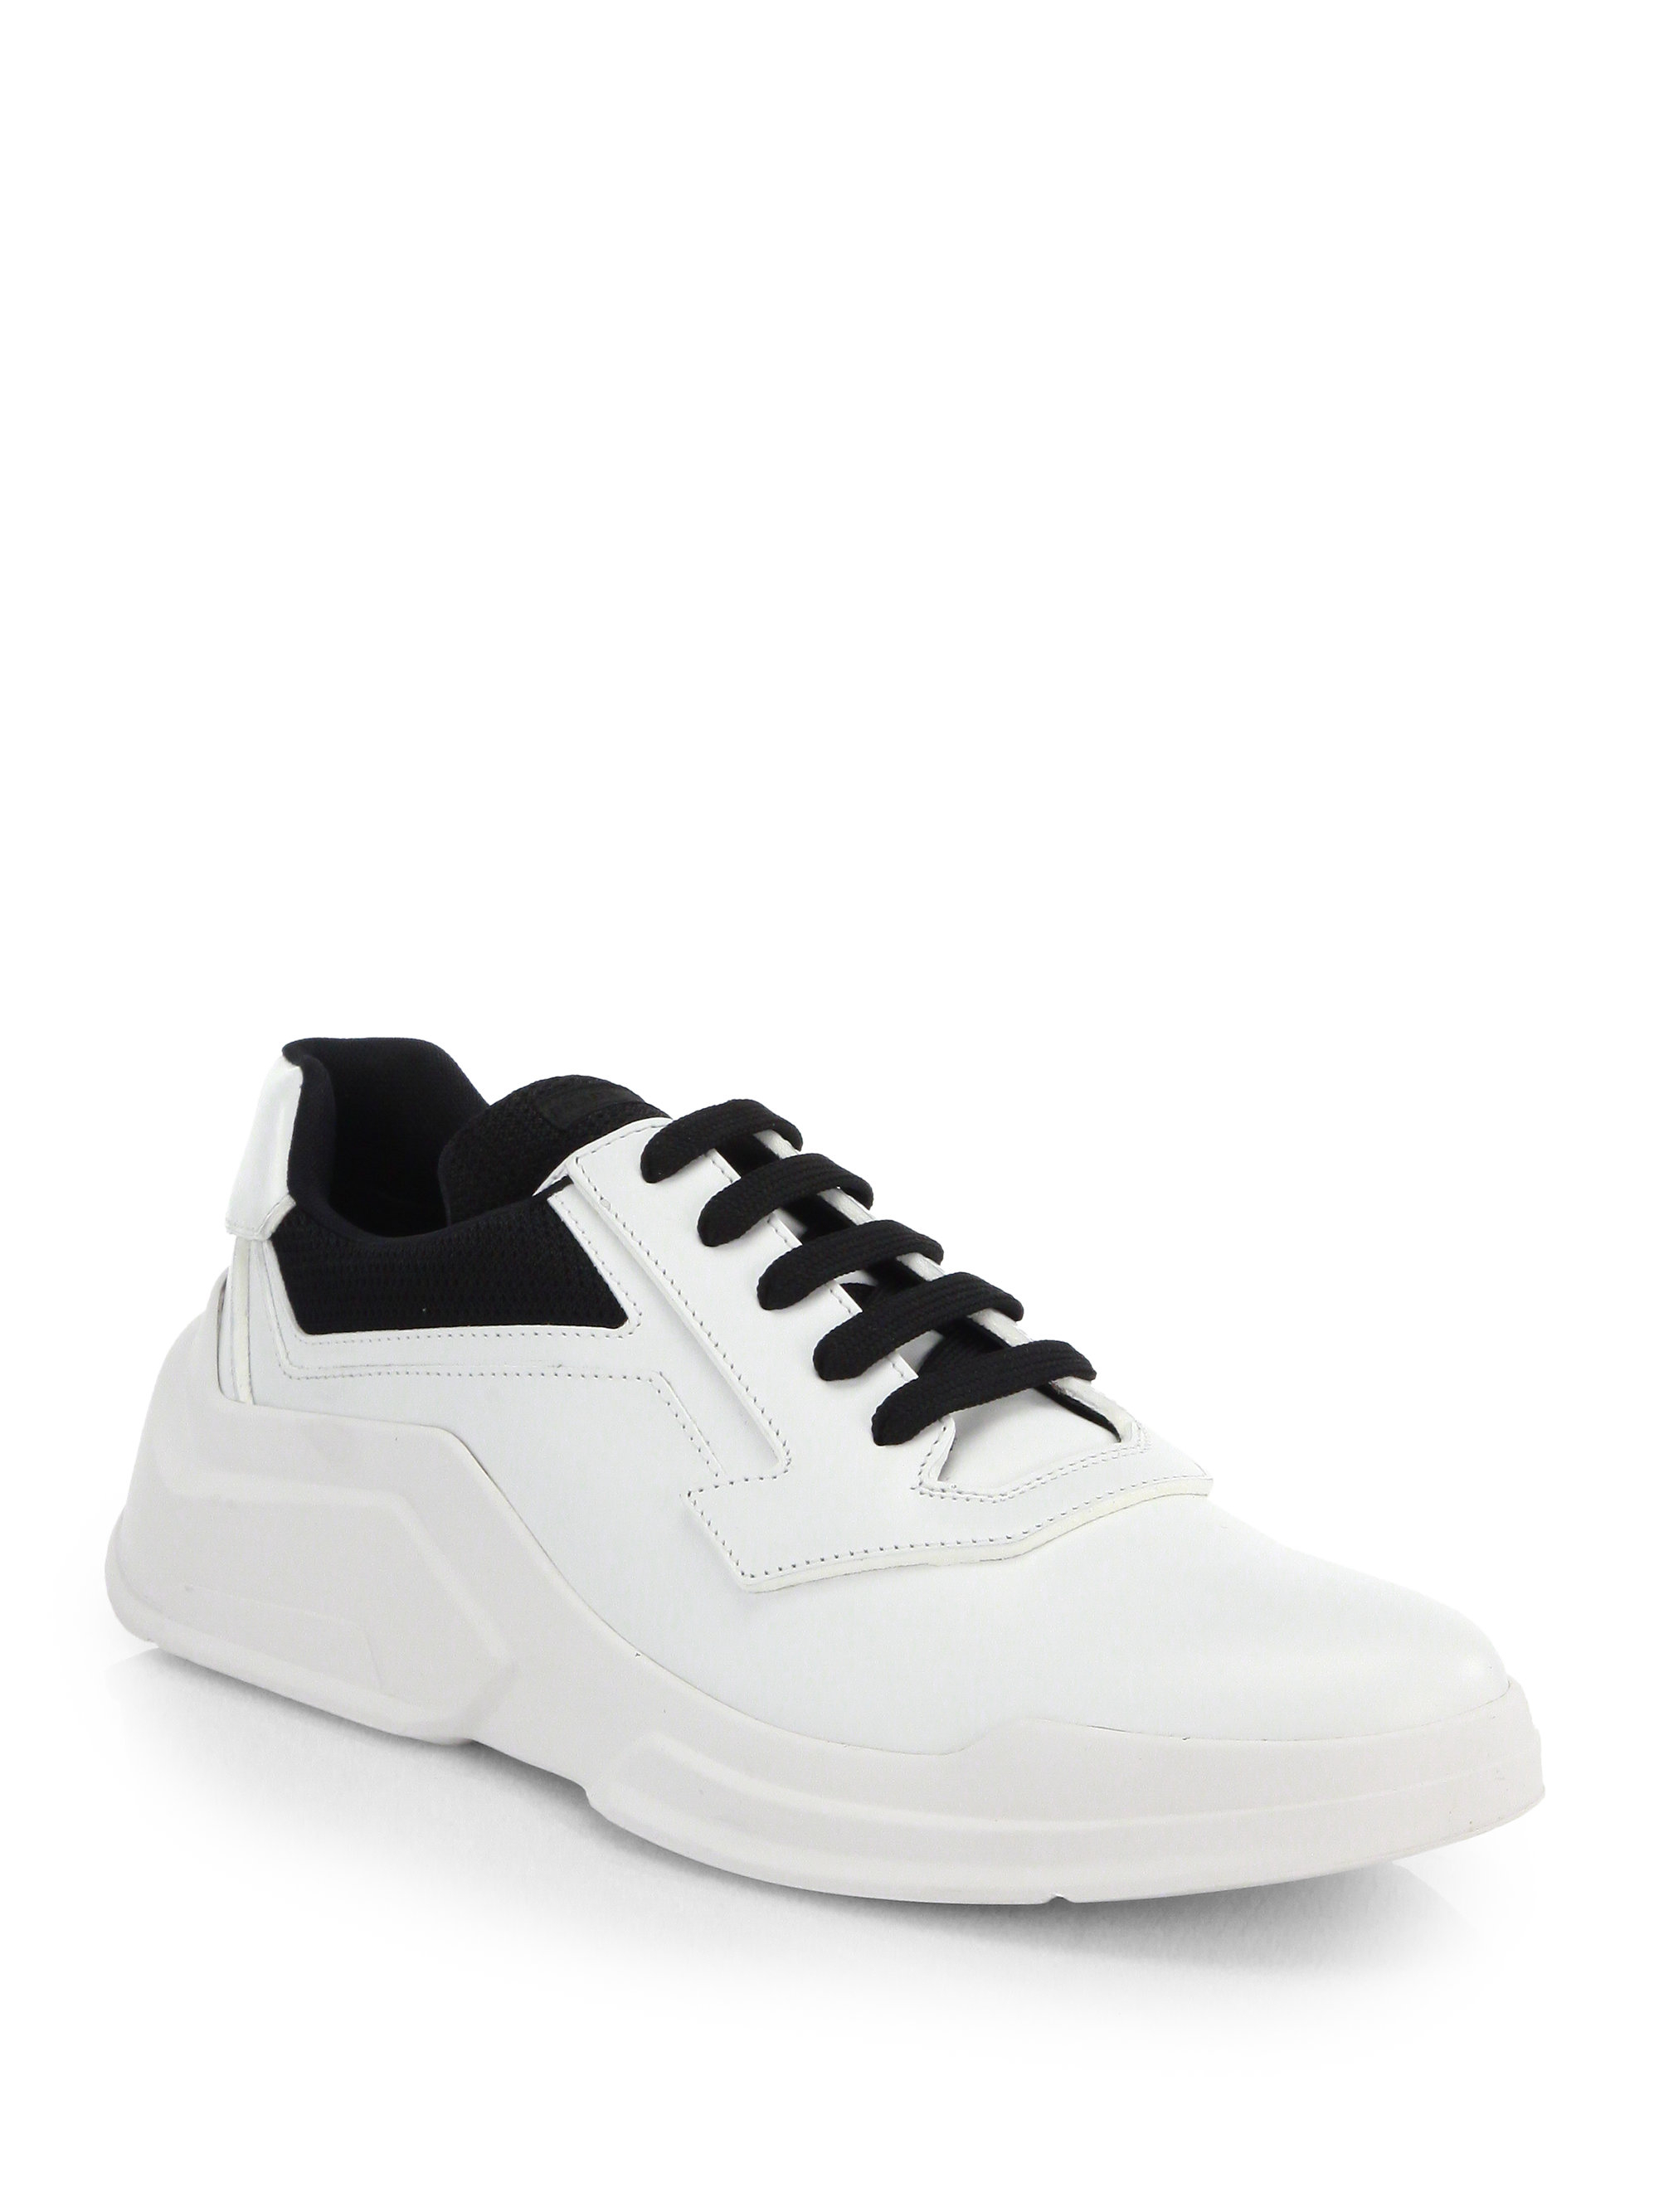 Lyst Prada Spazzolato Laced Runway Sneakers In White For Men